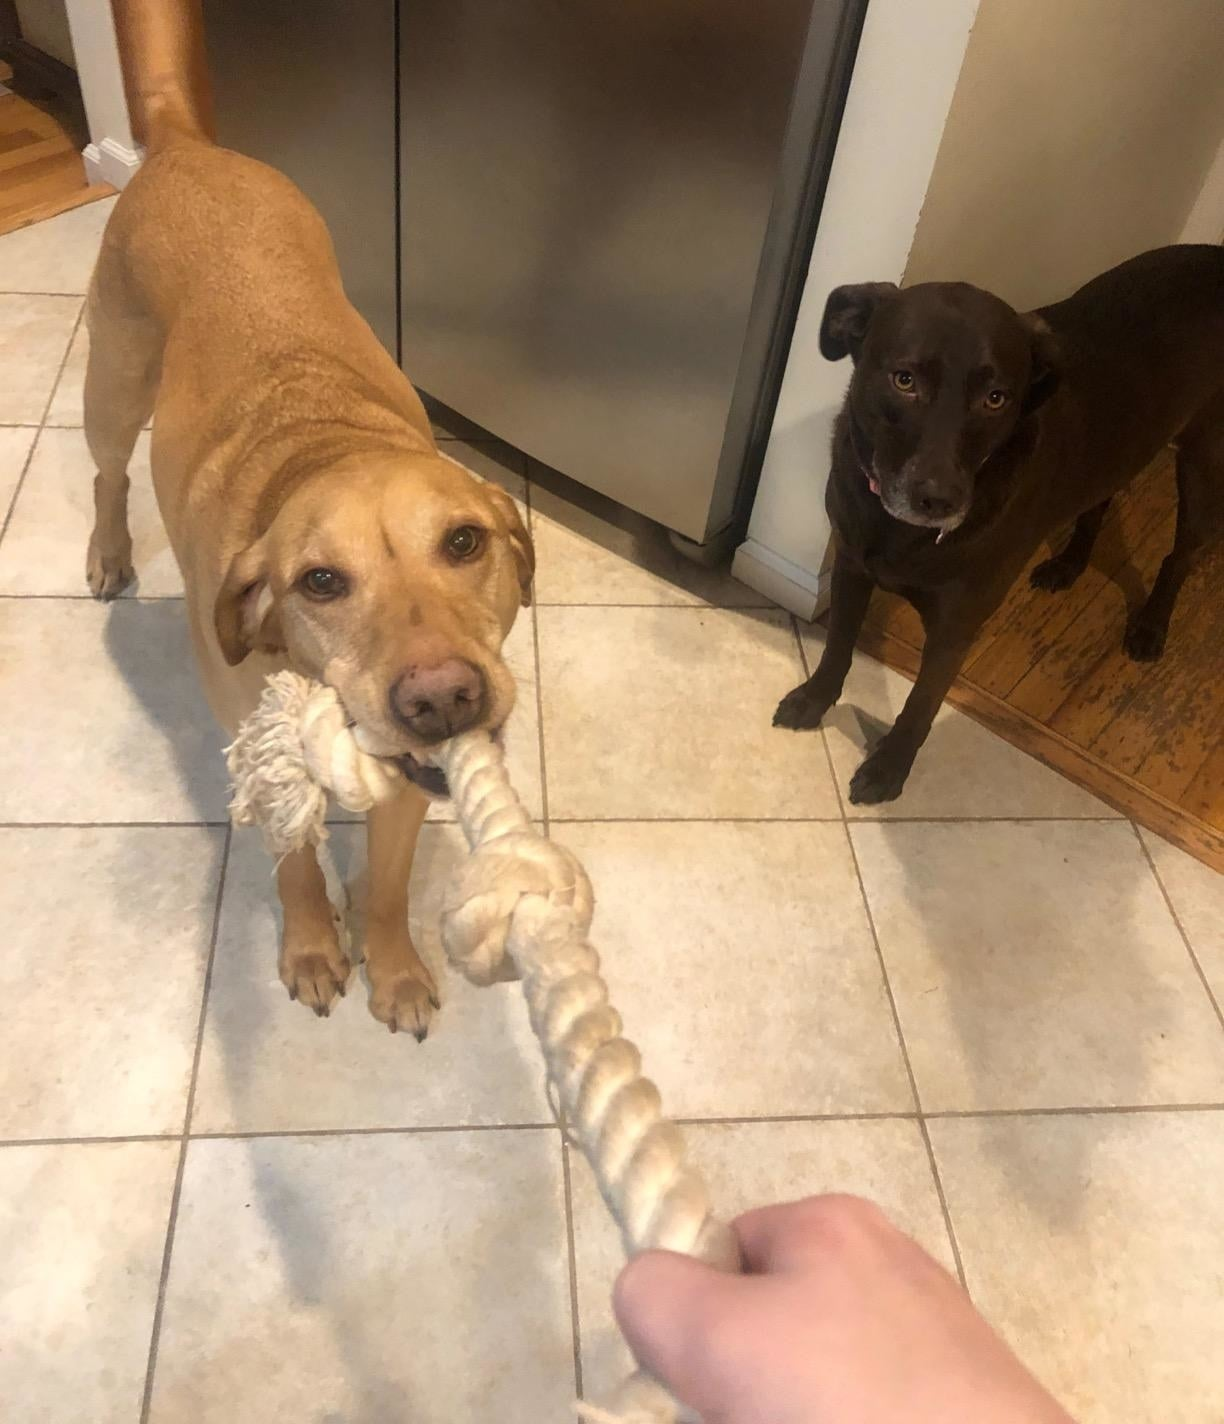 Reviewer playing tug-of-war with their dog